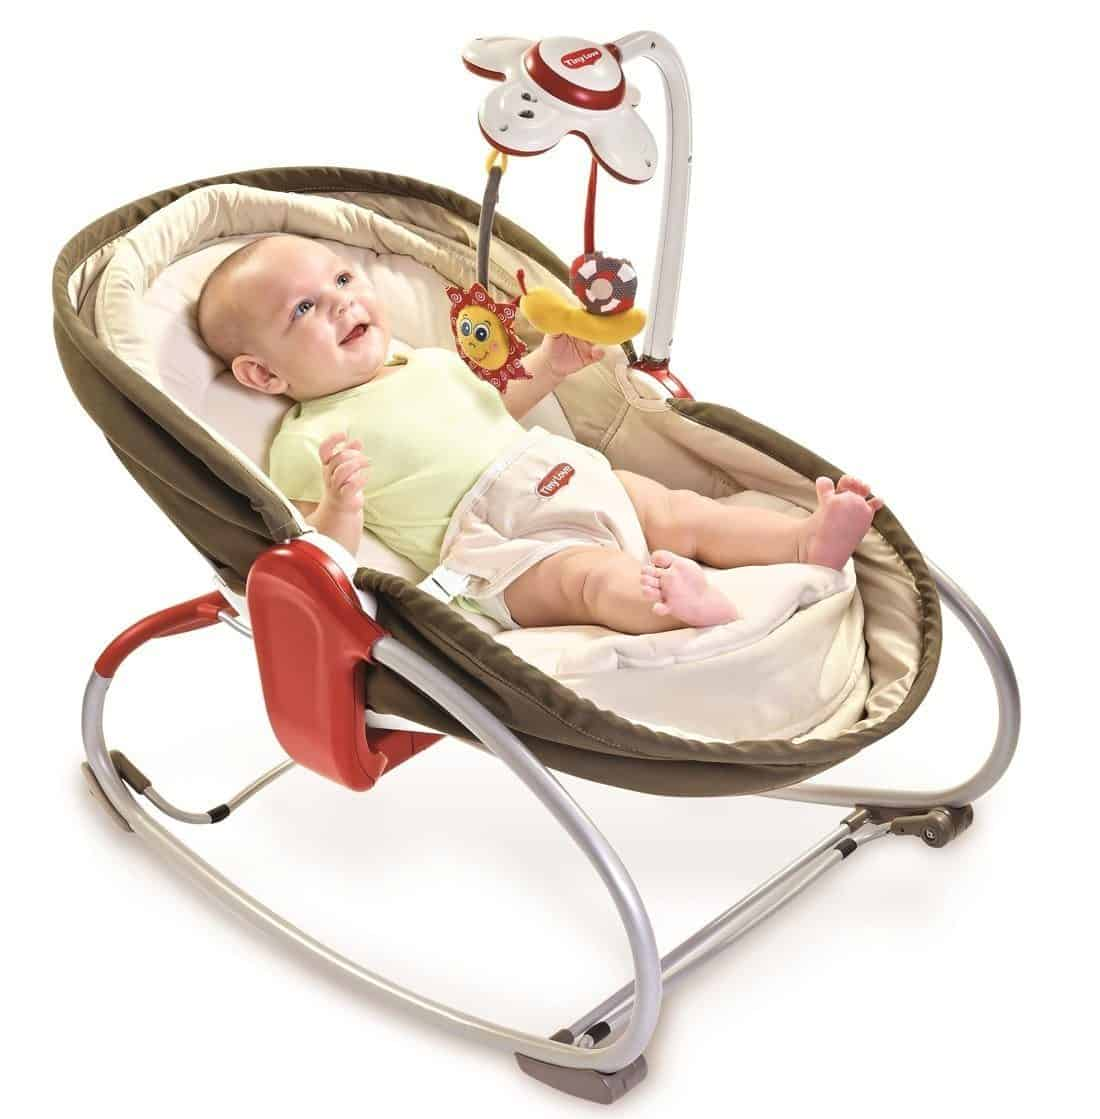 Tiny Love 3-in-1 Rocker Napper Review